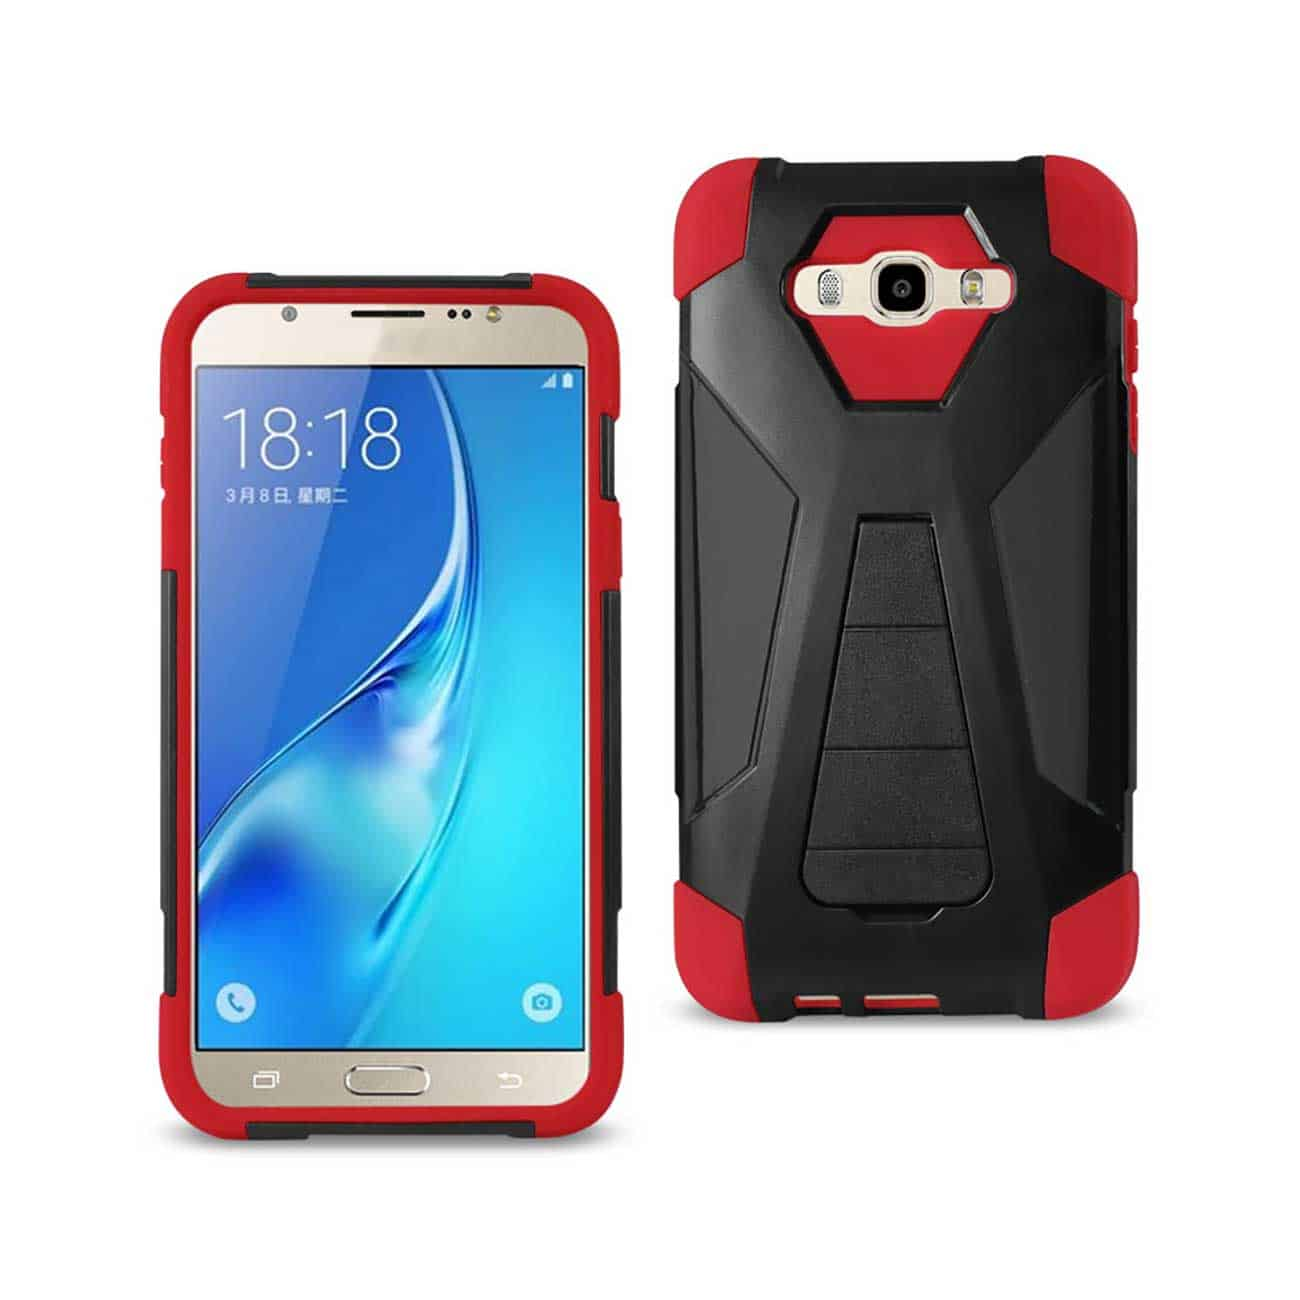 SAMSUNG GALAXY J7 (2016) HYBRID HEAVY DUTY CASE WITH KICKSTAND IN RED BLACK